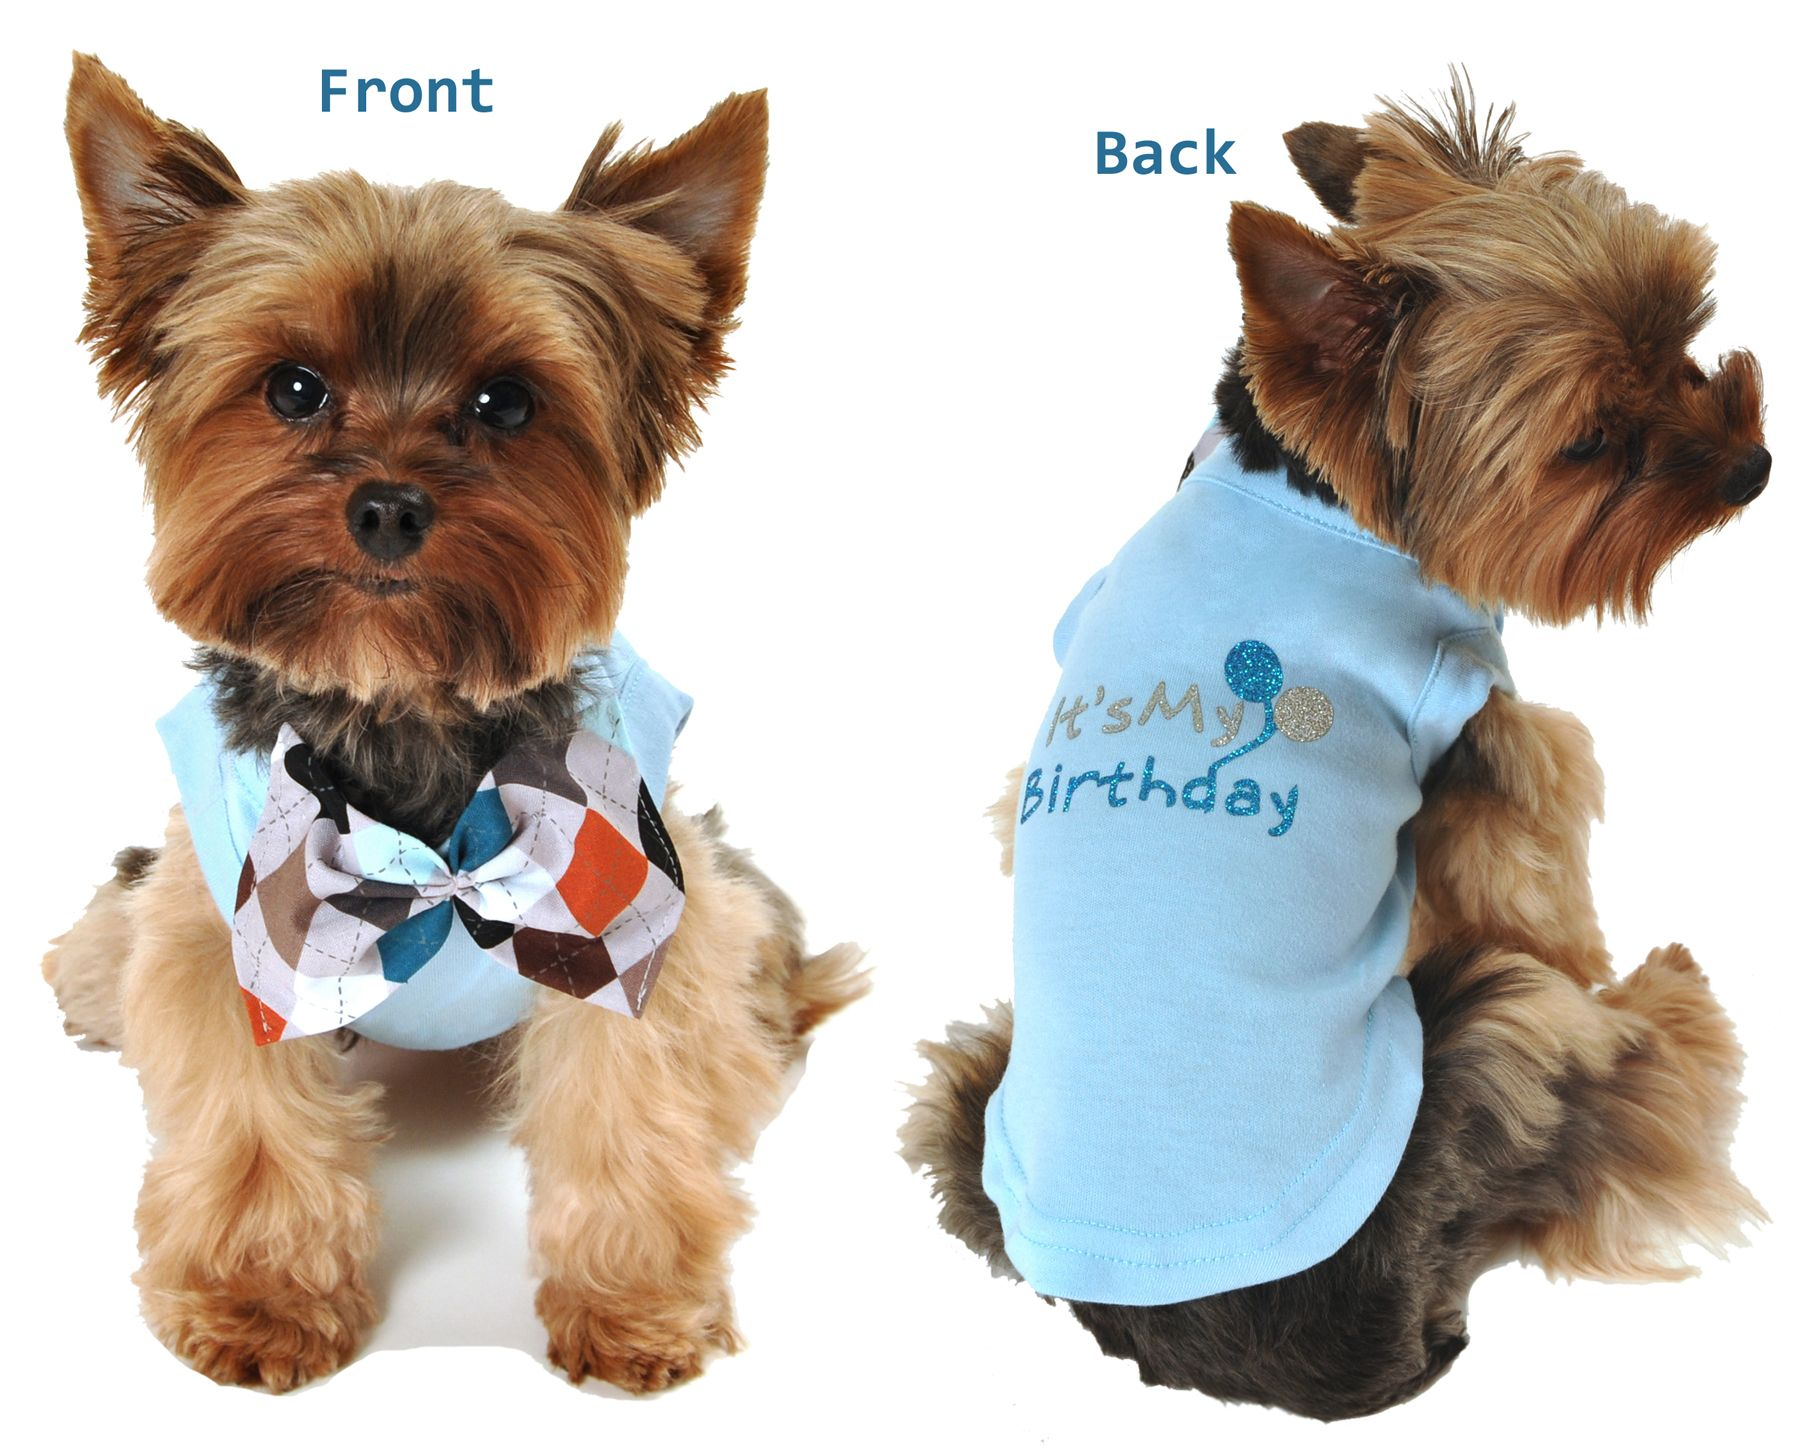 Birthday Shirts For Dogs photo - 3